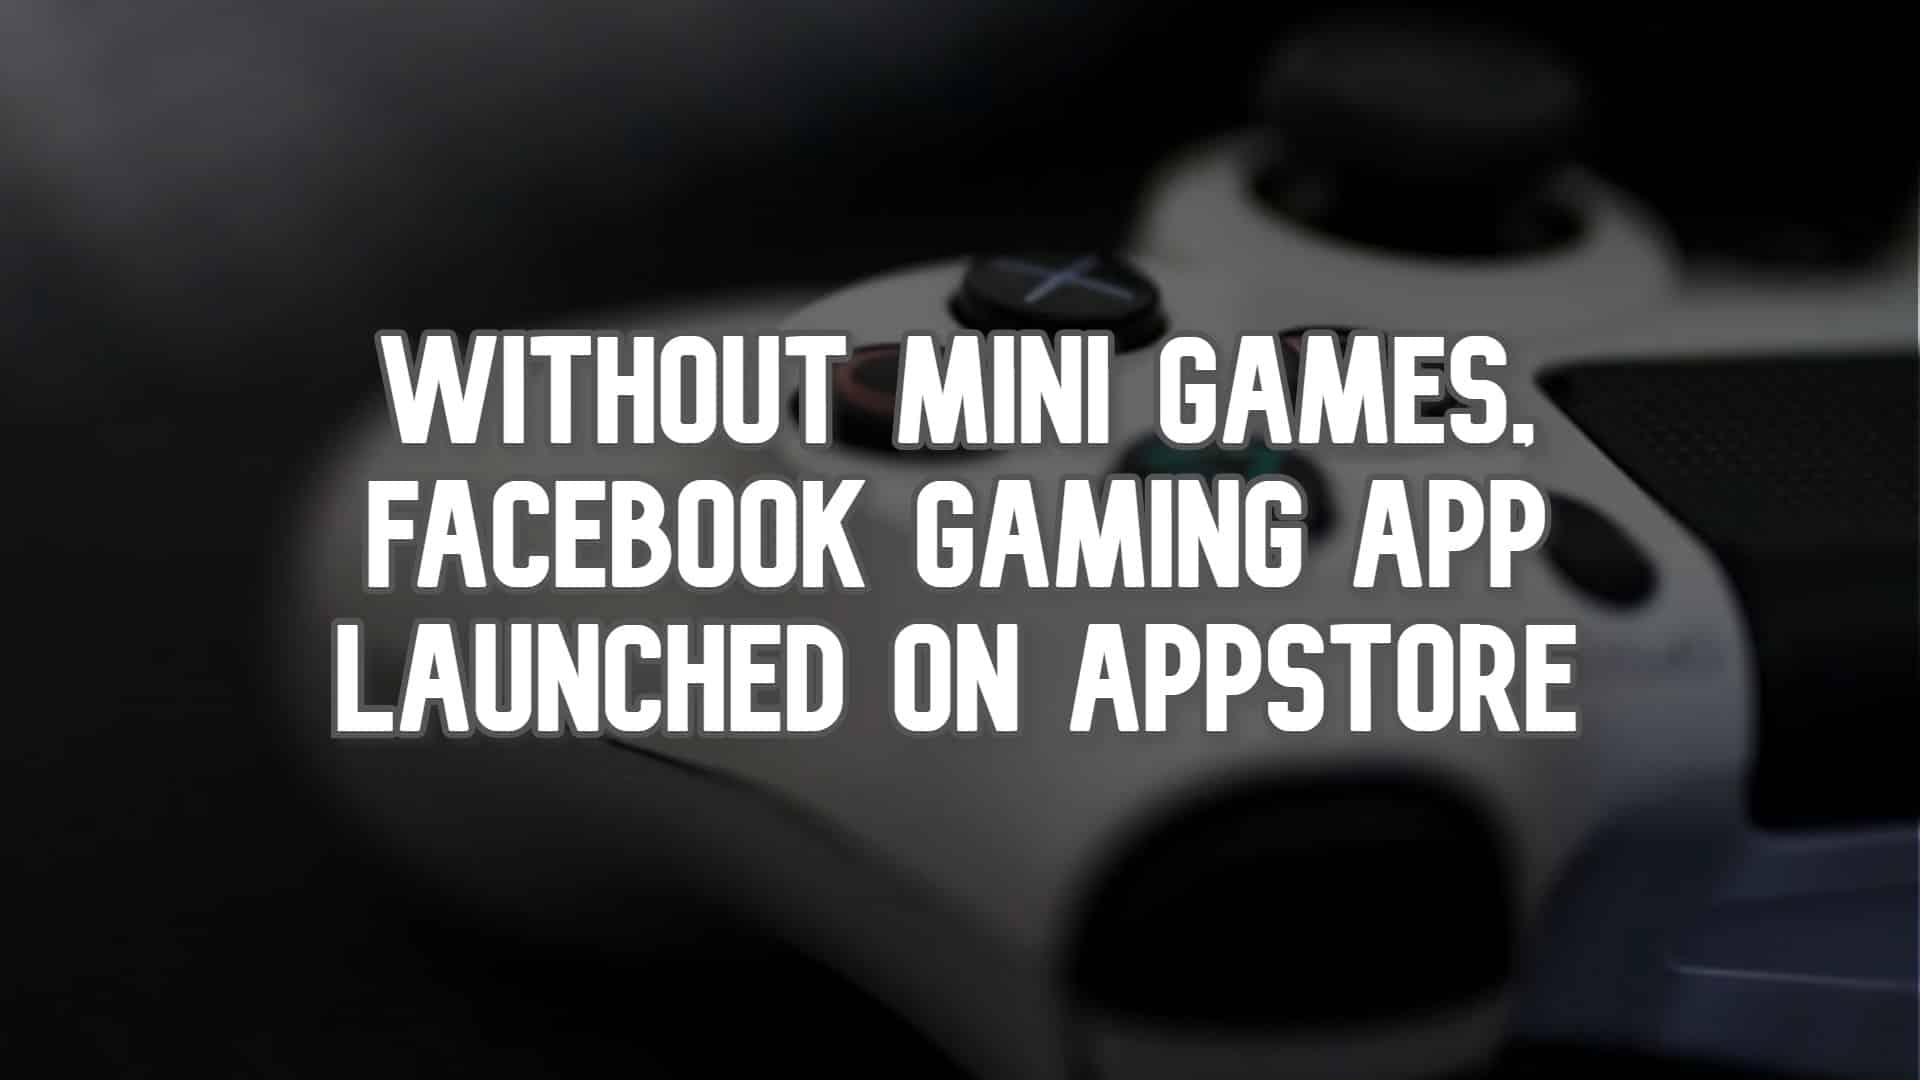 Without Mini-Games, Facebook Gaming App launched on Appstore